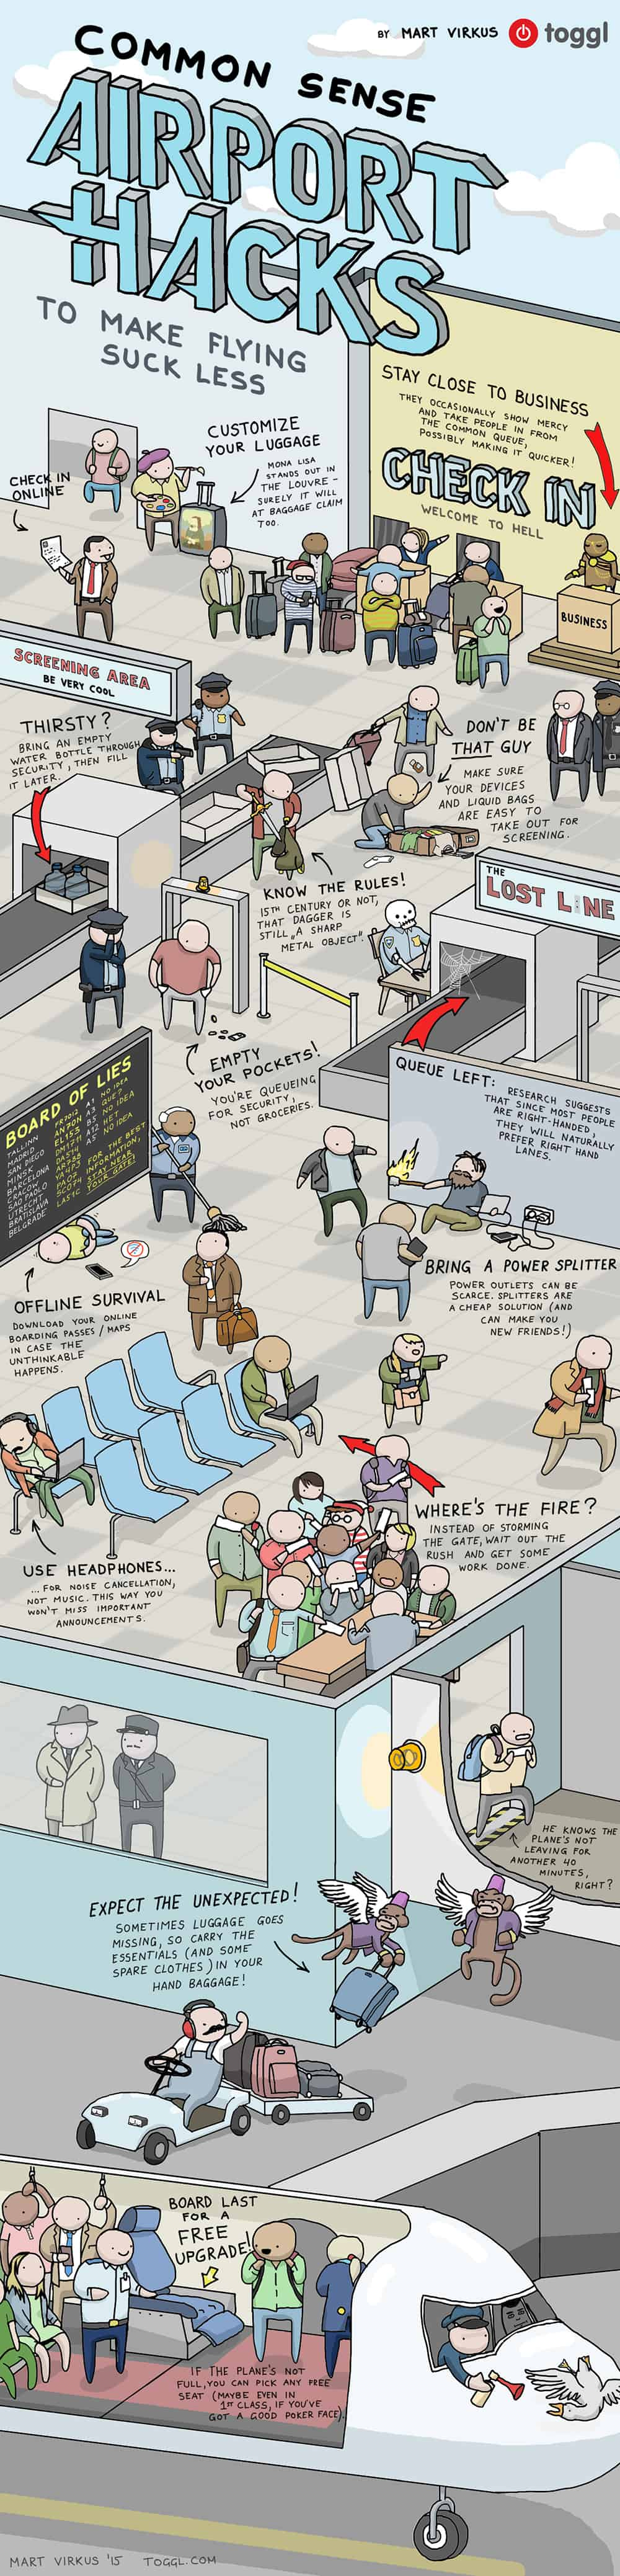 airport hacks infographic